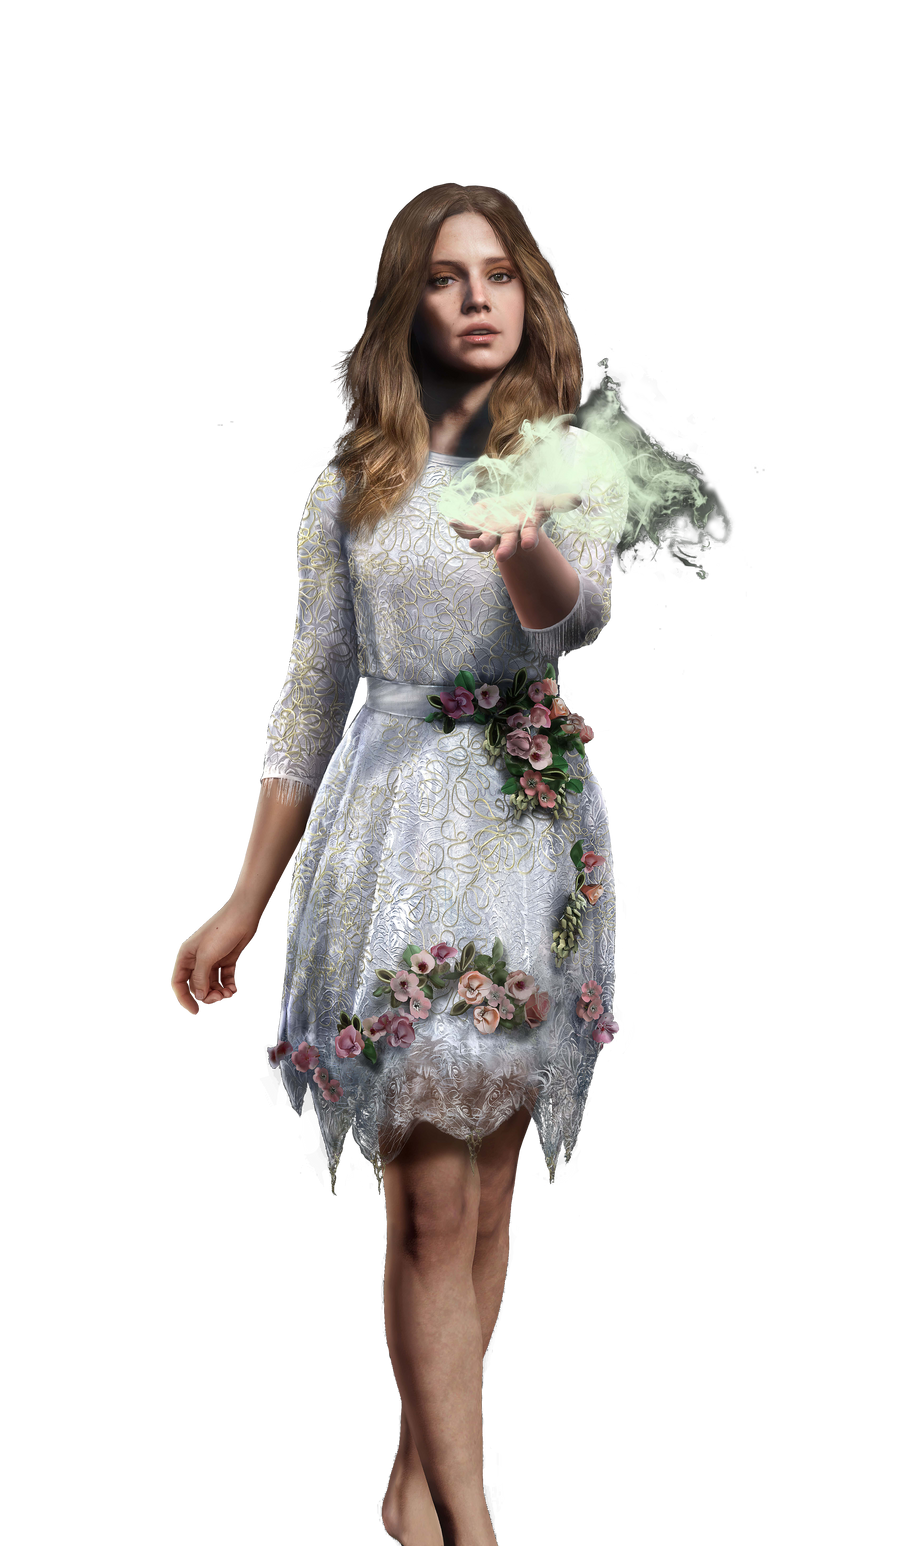 Far Cry 5 Character Faith Seed Png By Mintmovi3 On Deviantart What is a seed faith offering?. far cry 5 character faith seed png by